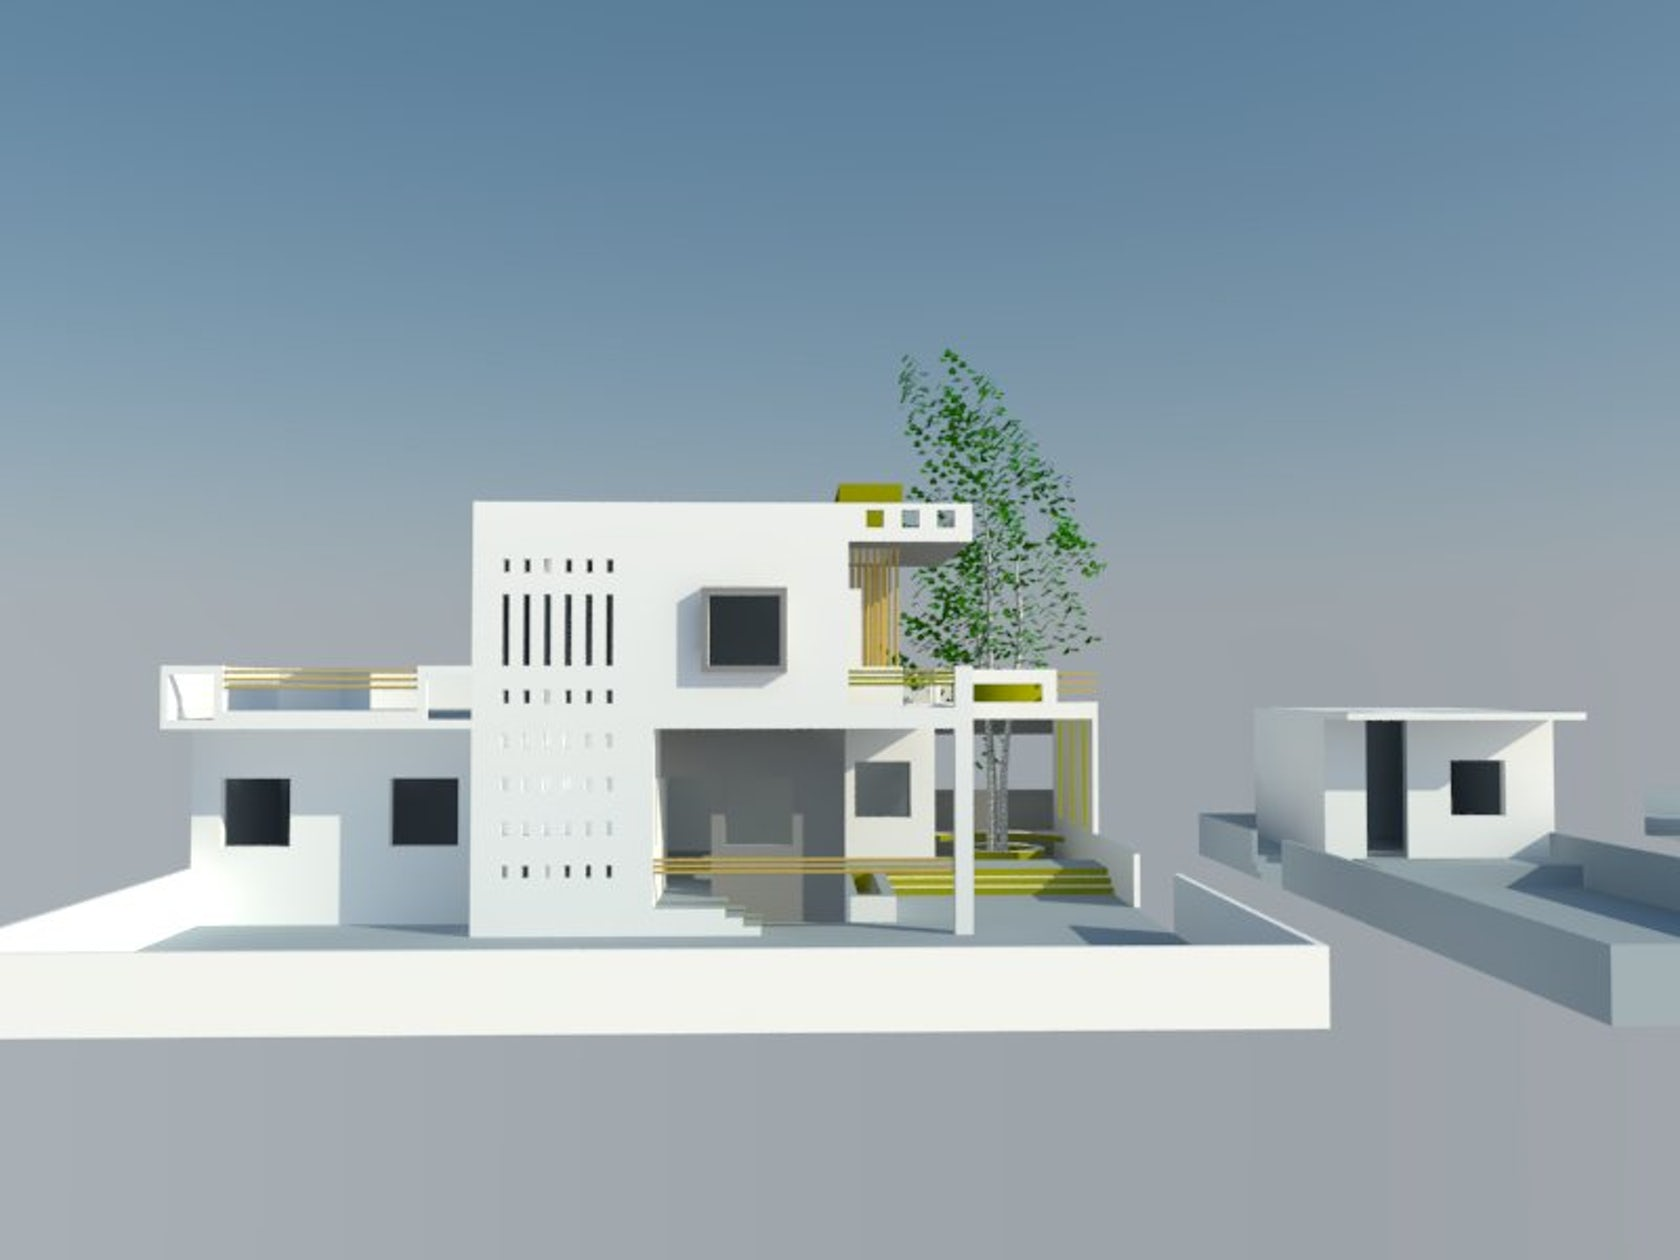 Low cost farm house architizer for Low cost farm house